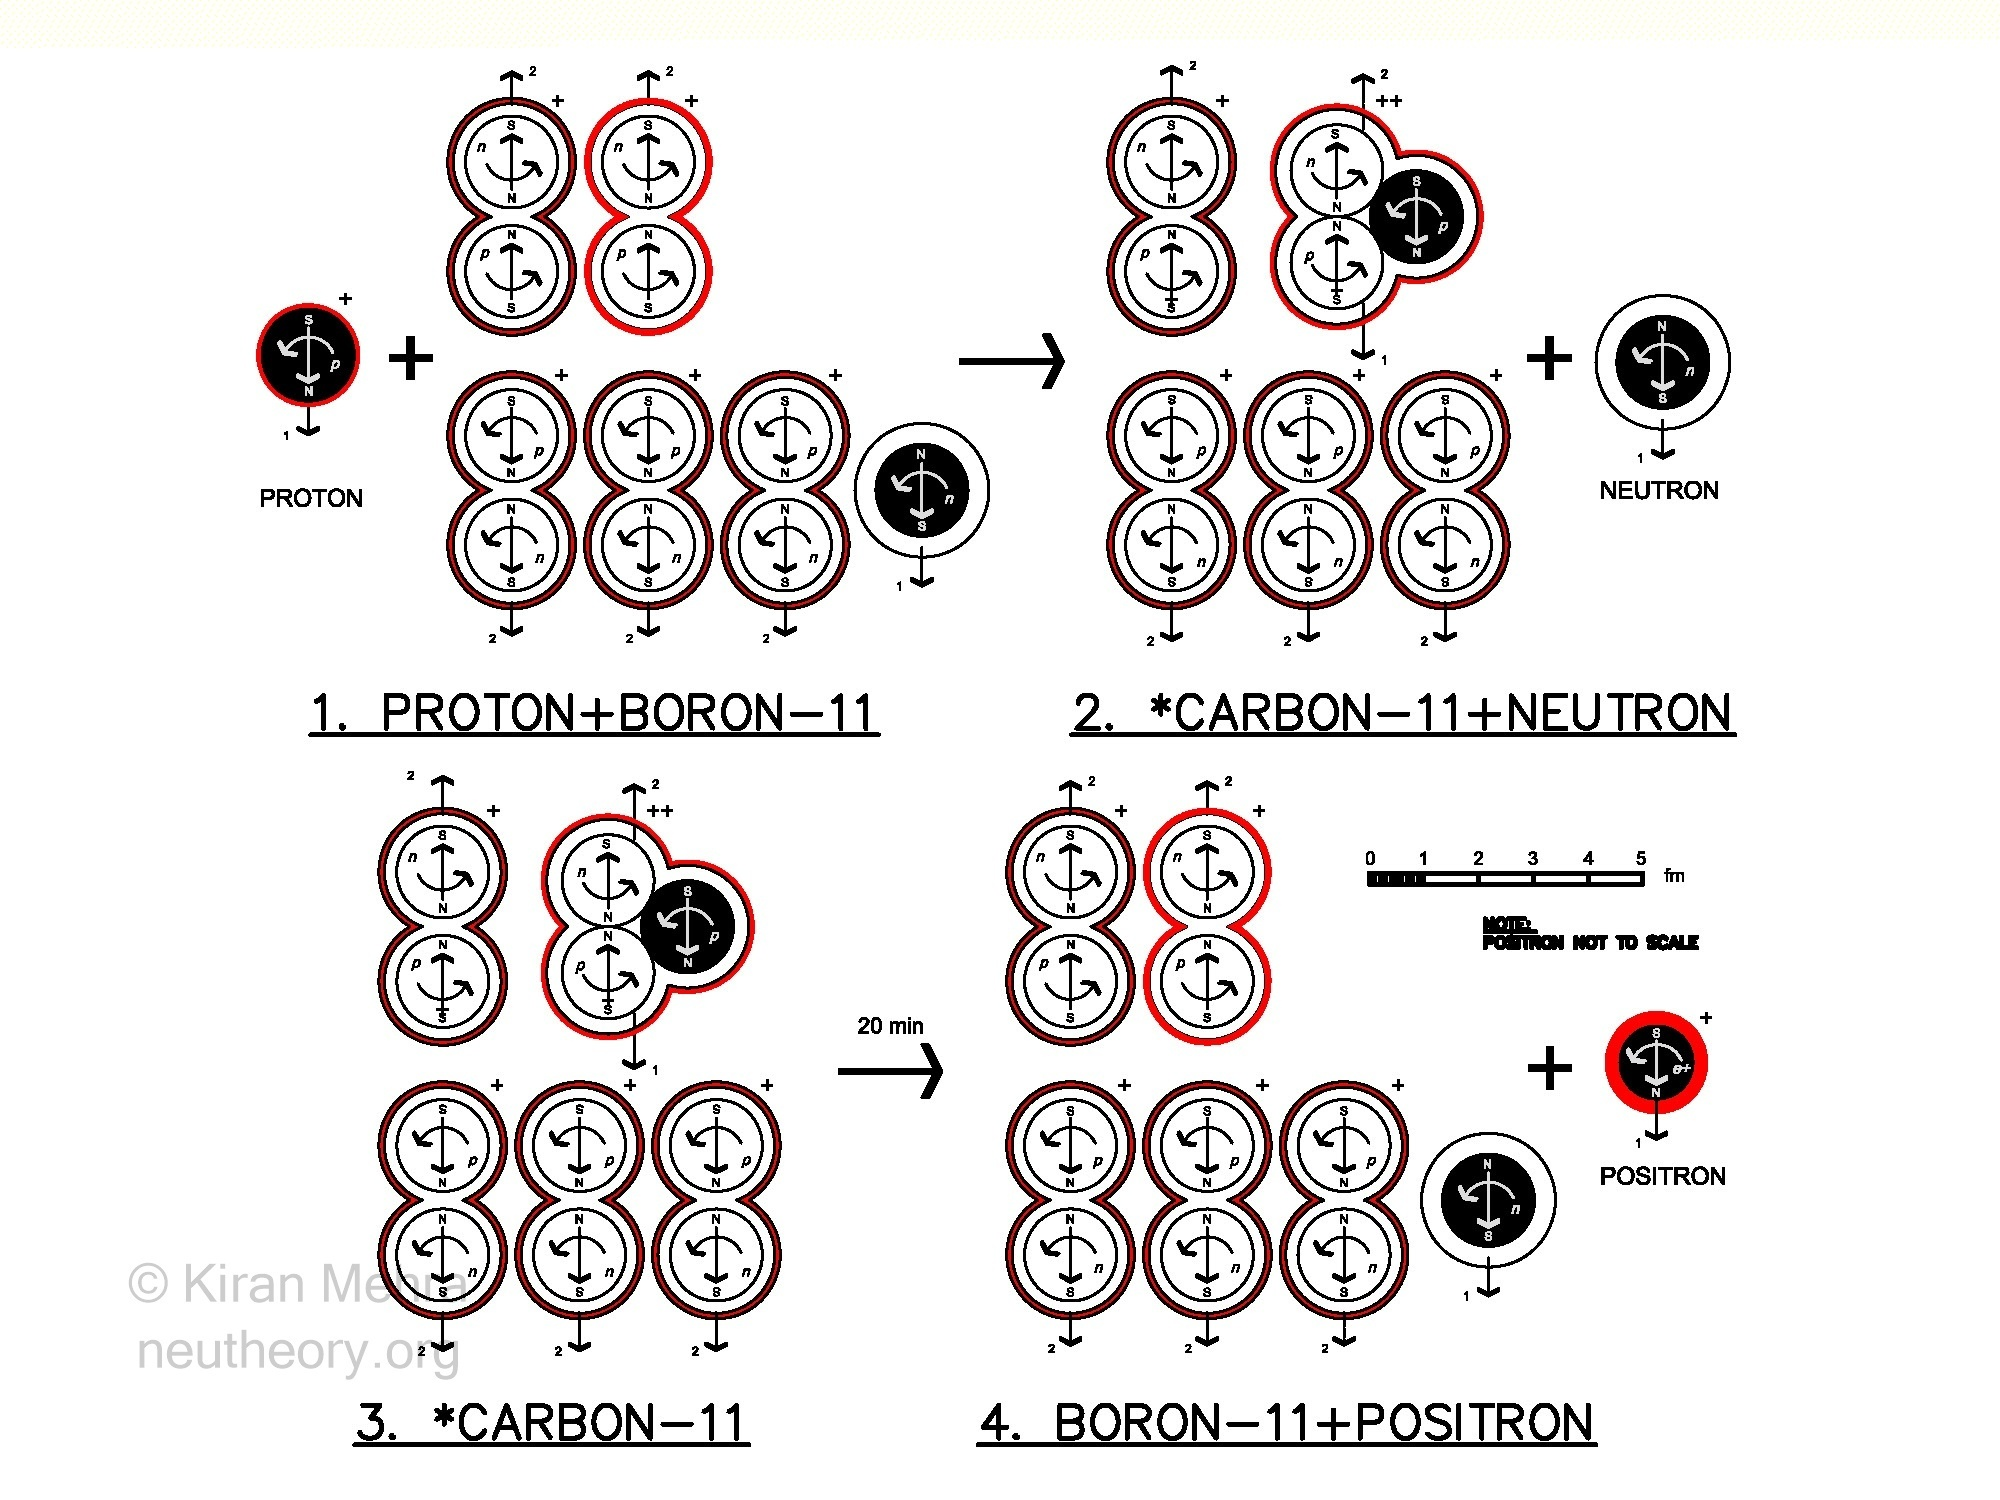 Four diagrams showing one process by which a positron is made from boron-11